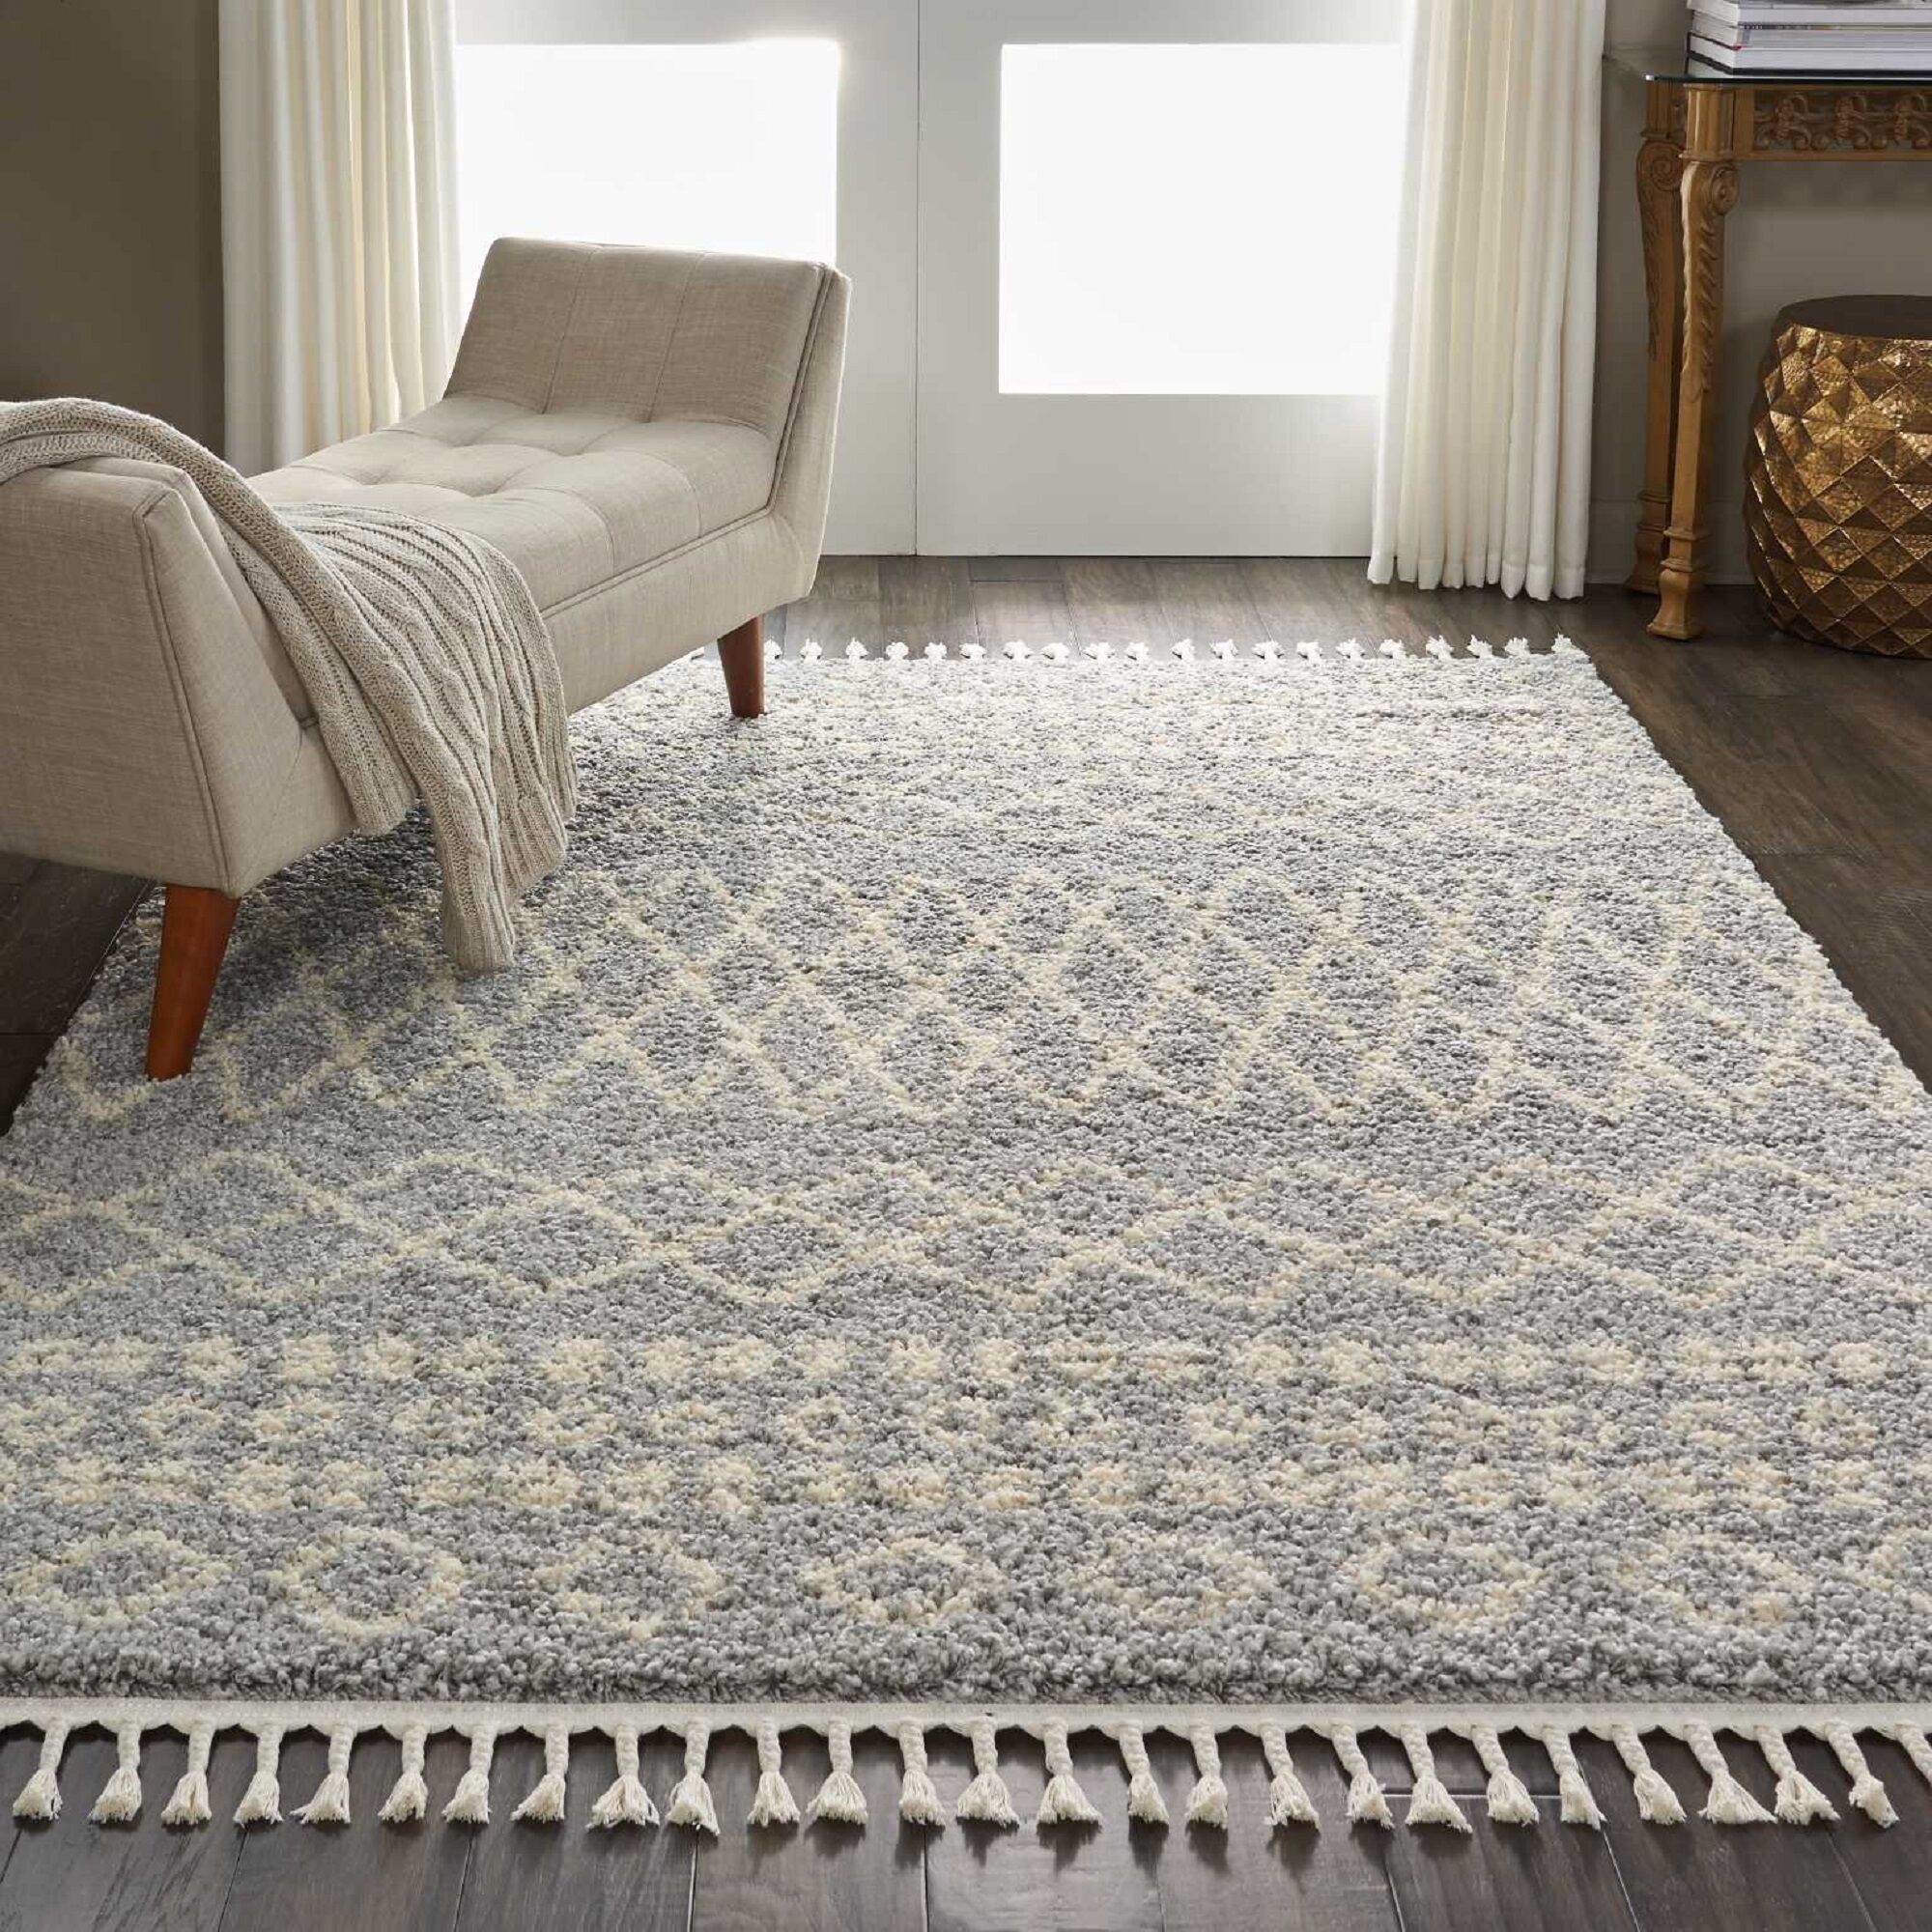 Iverson Moroccan Tribal Gray/Beige Area Rug Rug Size: Rectangle 9'2